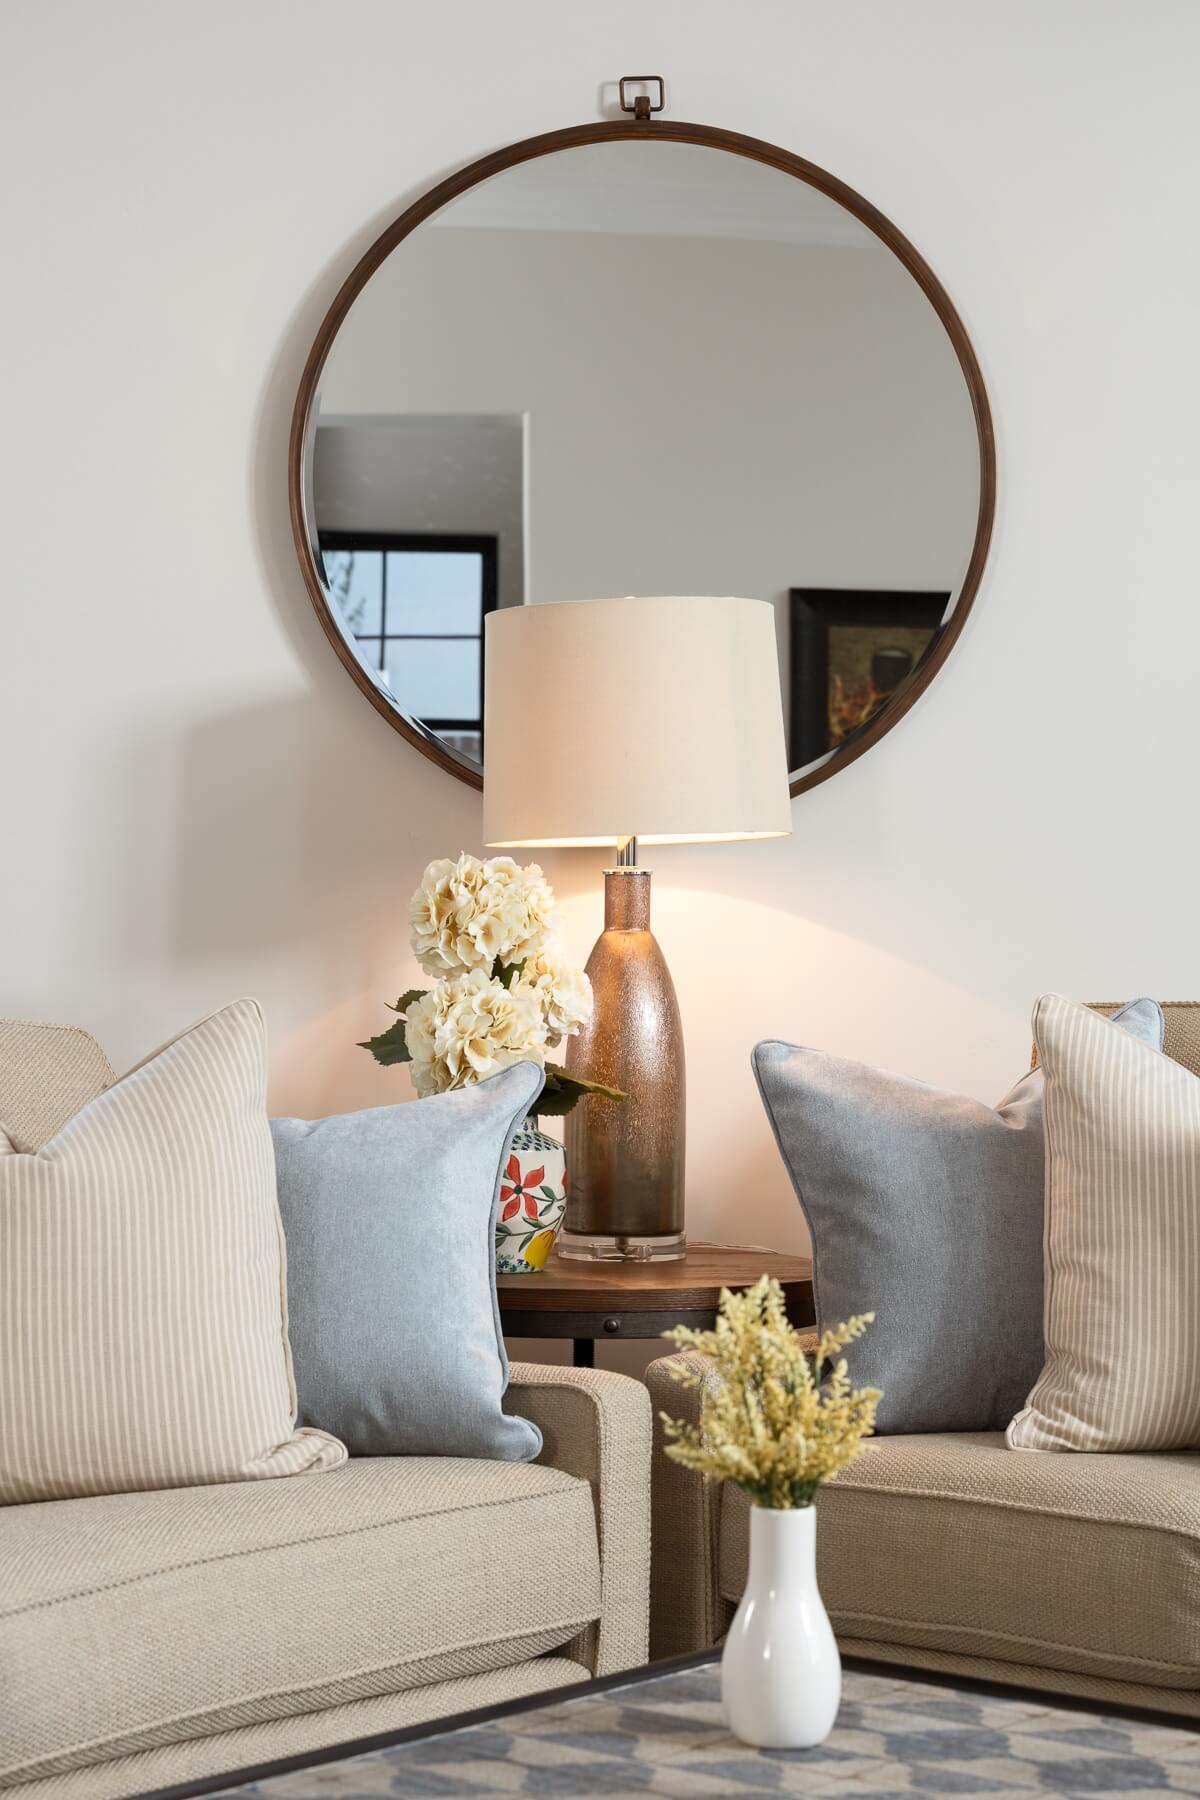 Living Room Sofas with Accent Mirror - Home Design by Dennis Miller Homes